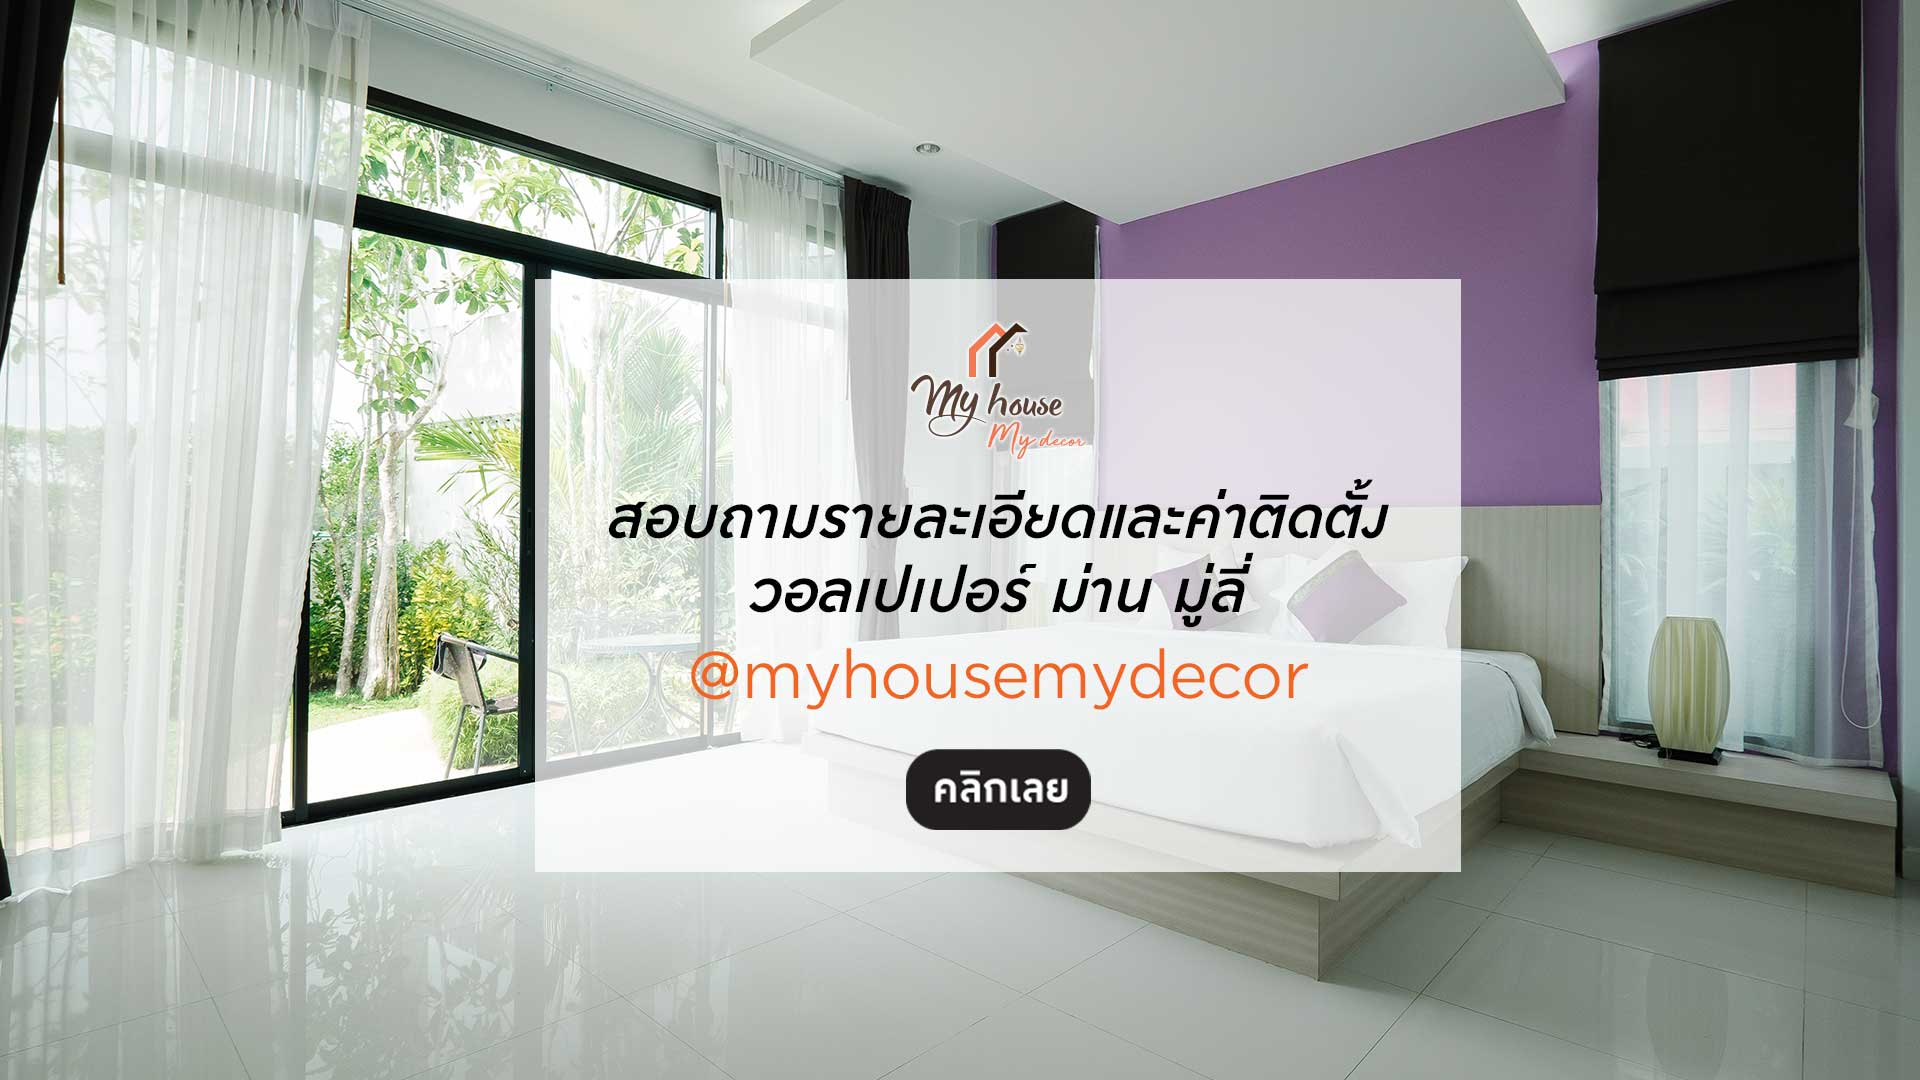 myhousemydecor